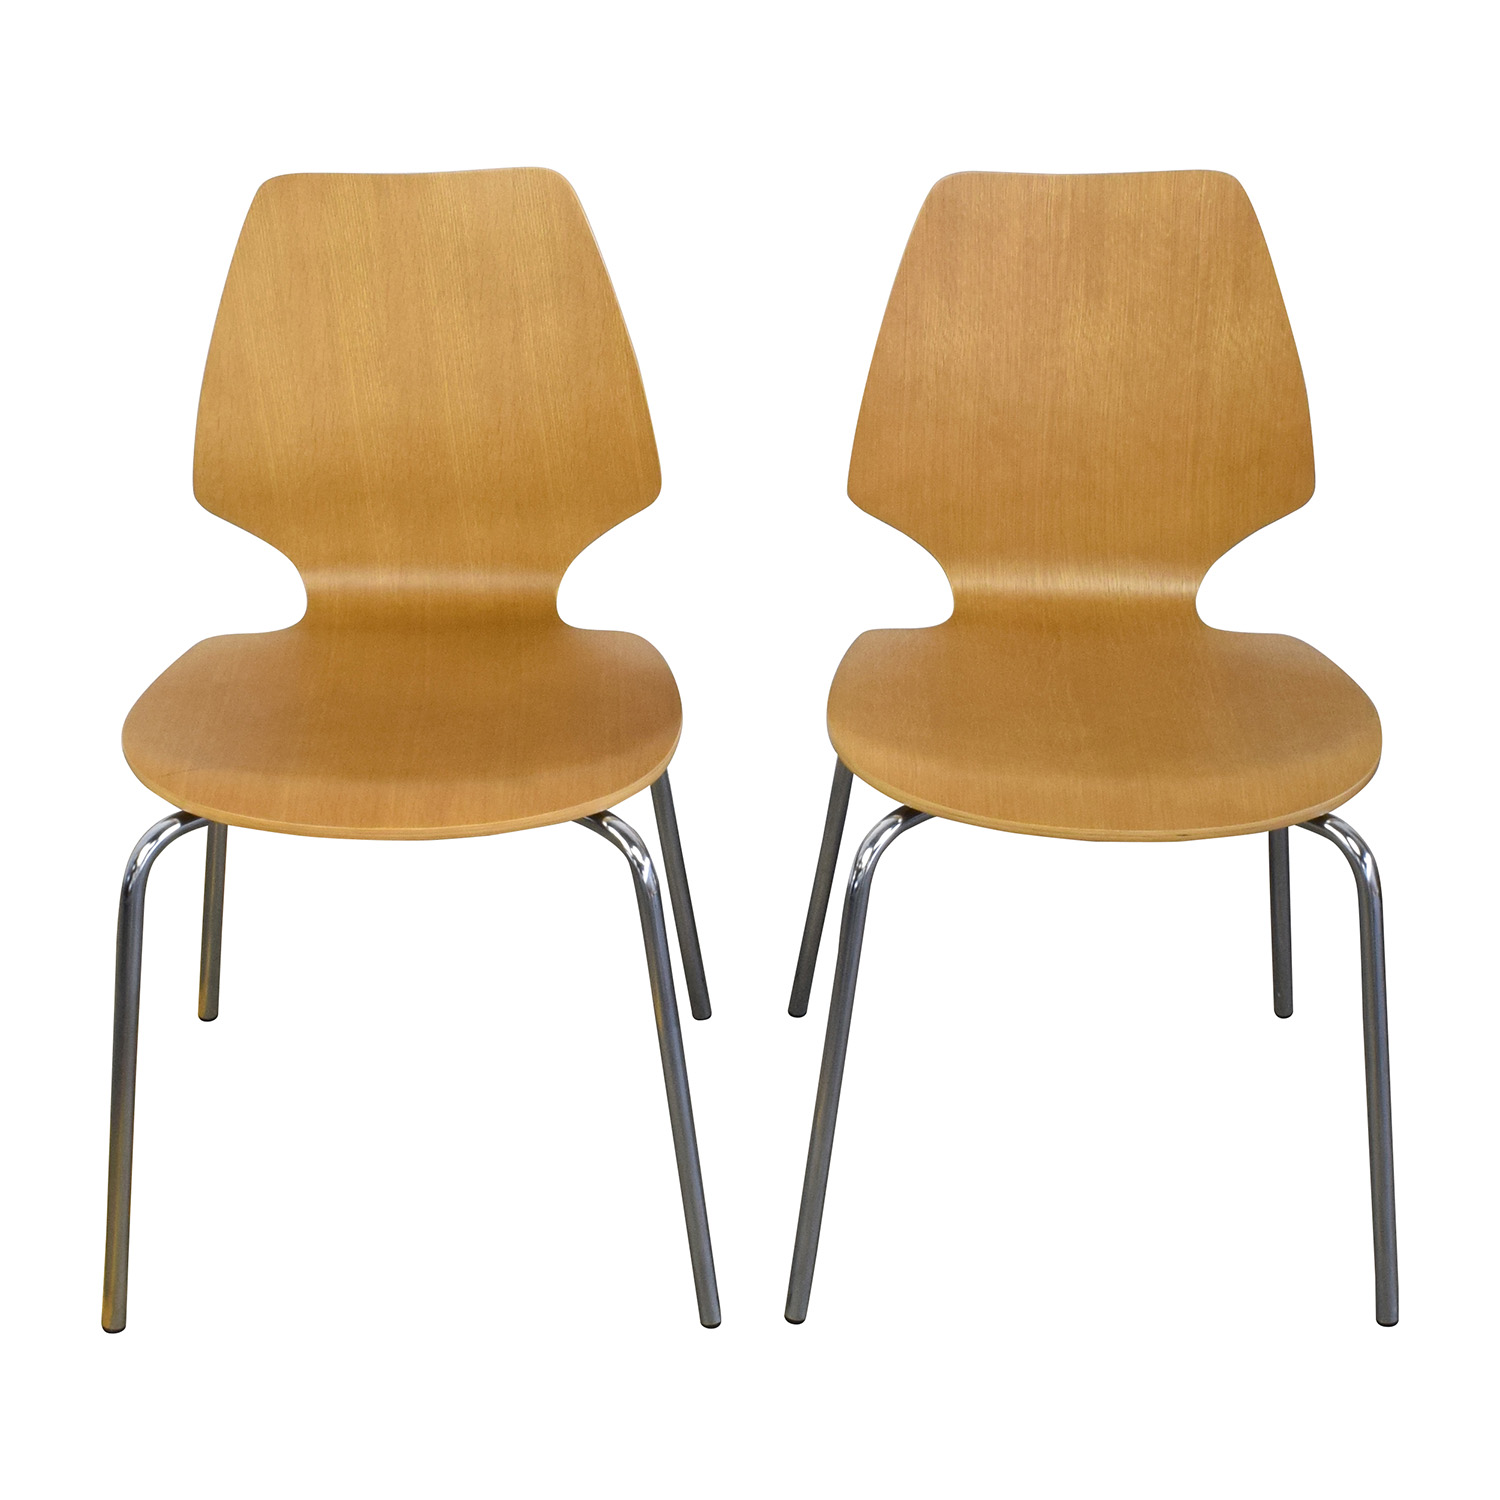 West Elm West Elm Scoop-Back Natural Wood Chairs dimensions